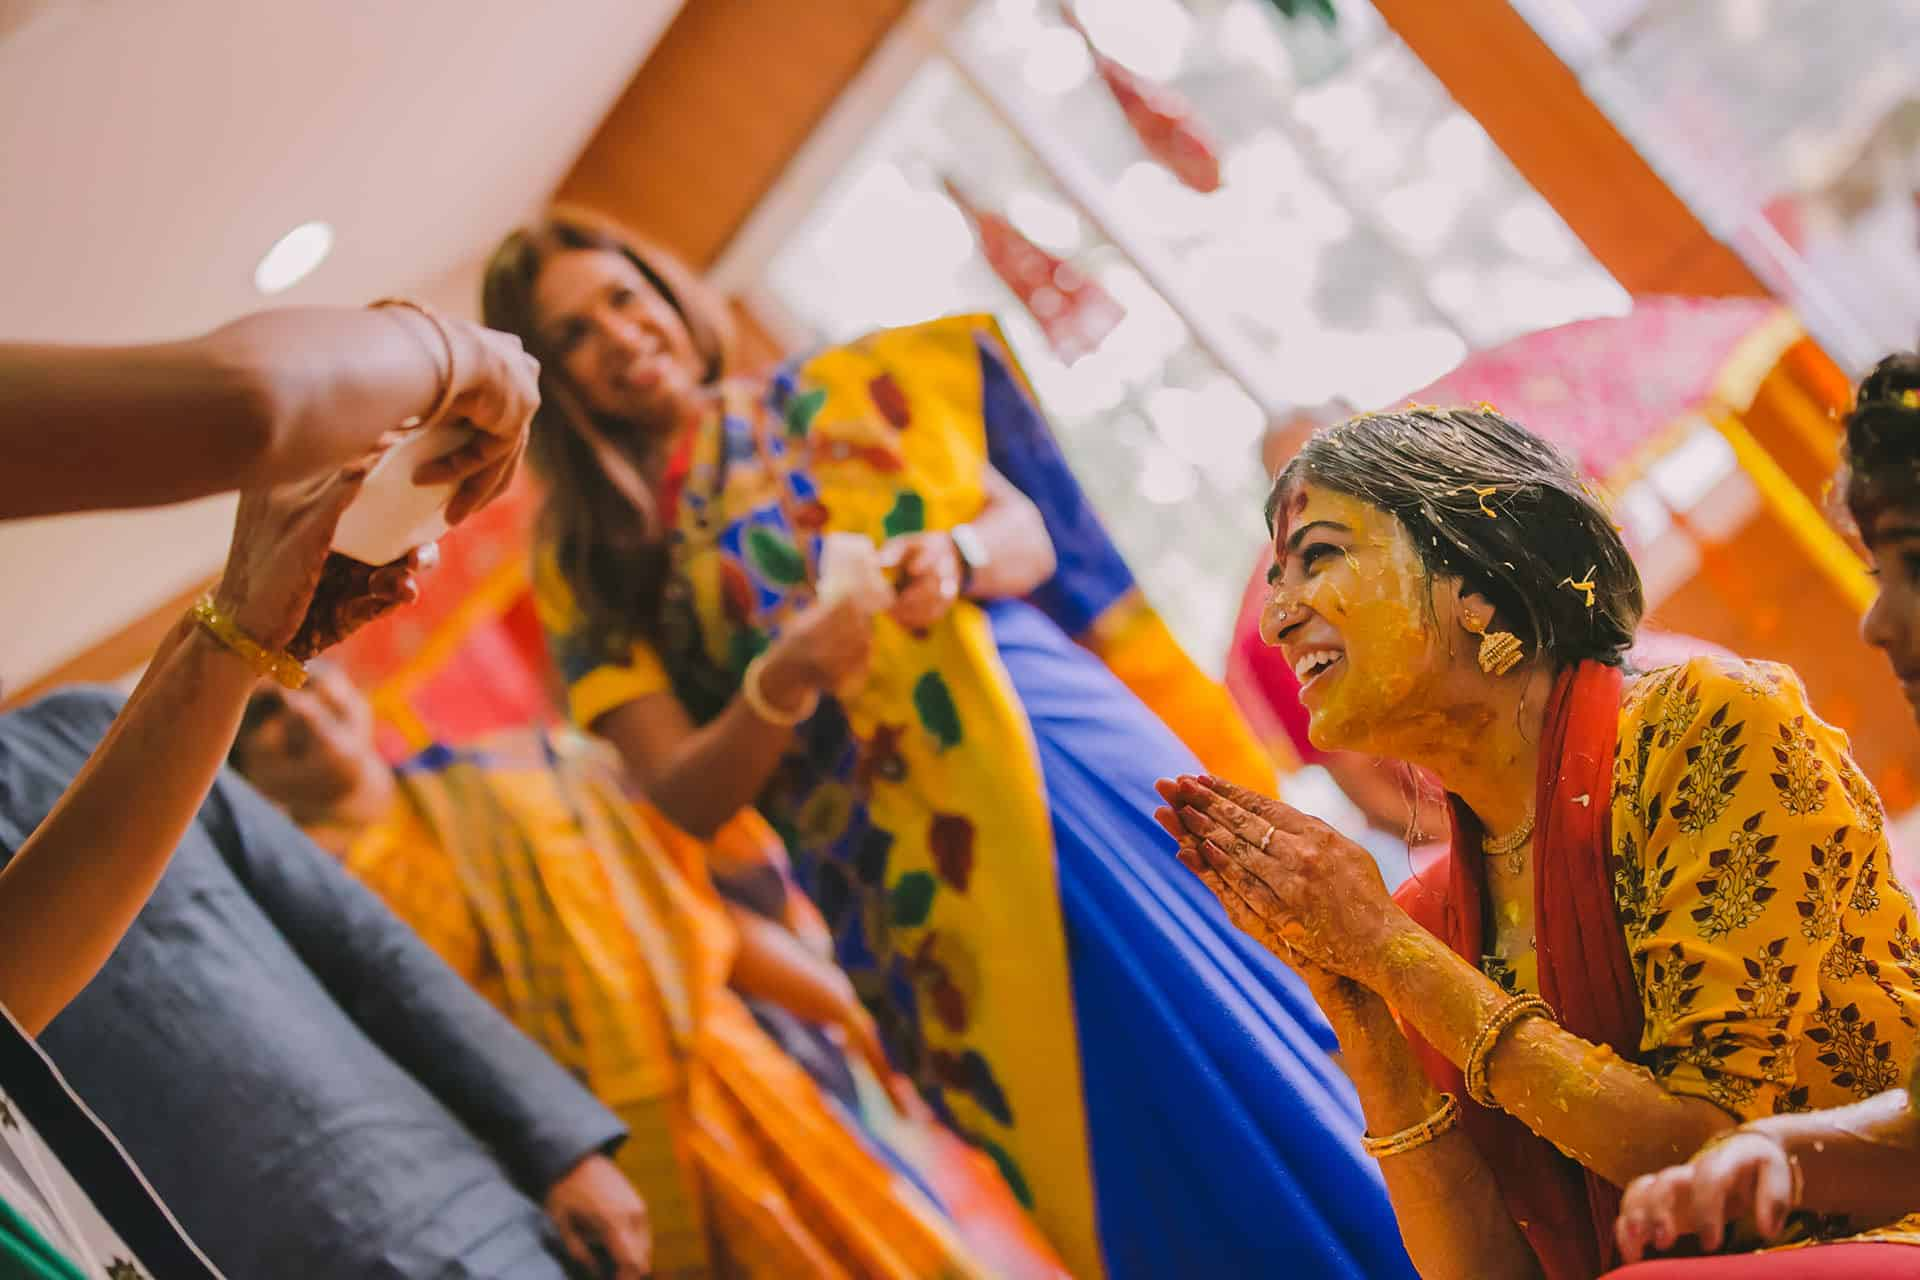 Bride pleading her friend not add more haldi